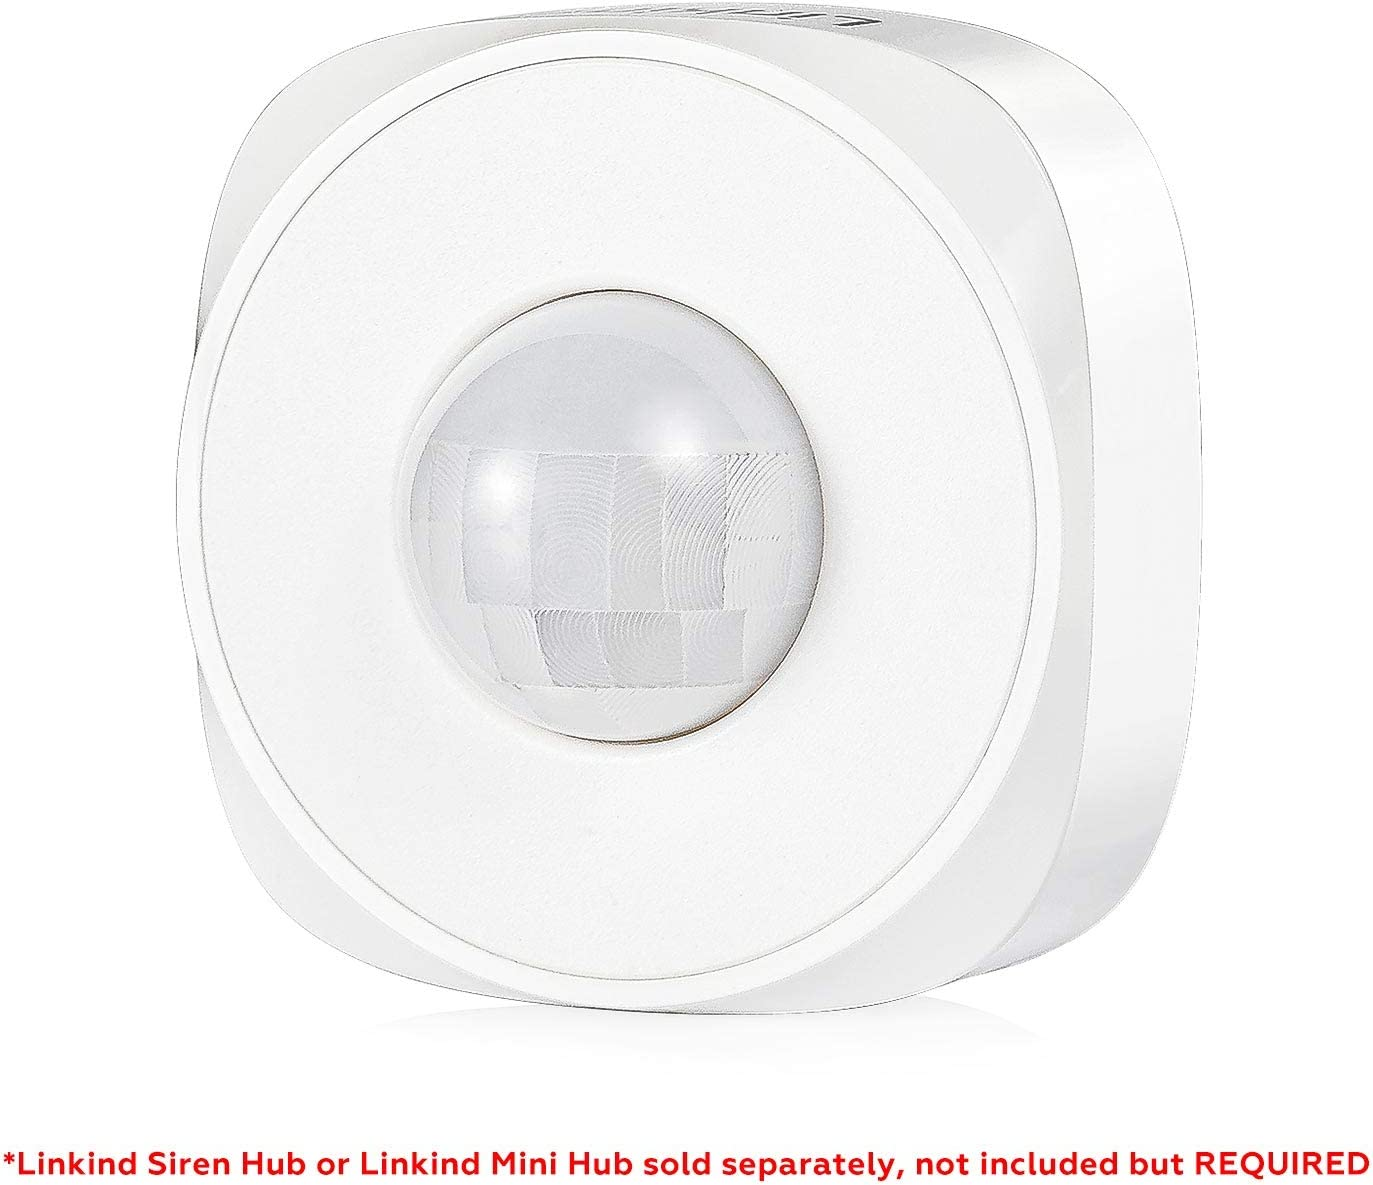 Linkind PIR Motion Sensor, Wireless Motion Detector, Zigbee-White, for DIY Use with Linkind Home Security System, Automation with Linkind Smart Zigbee LED Lights, LINKIND Hub Required (NOT Included)